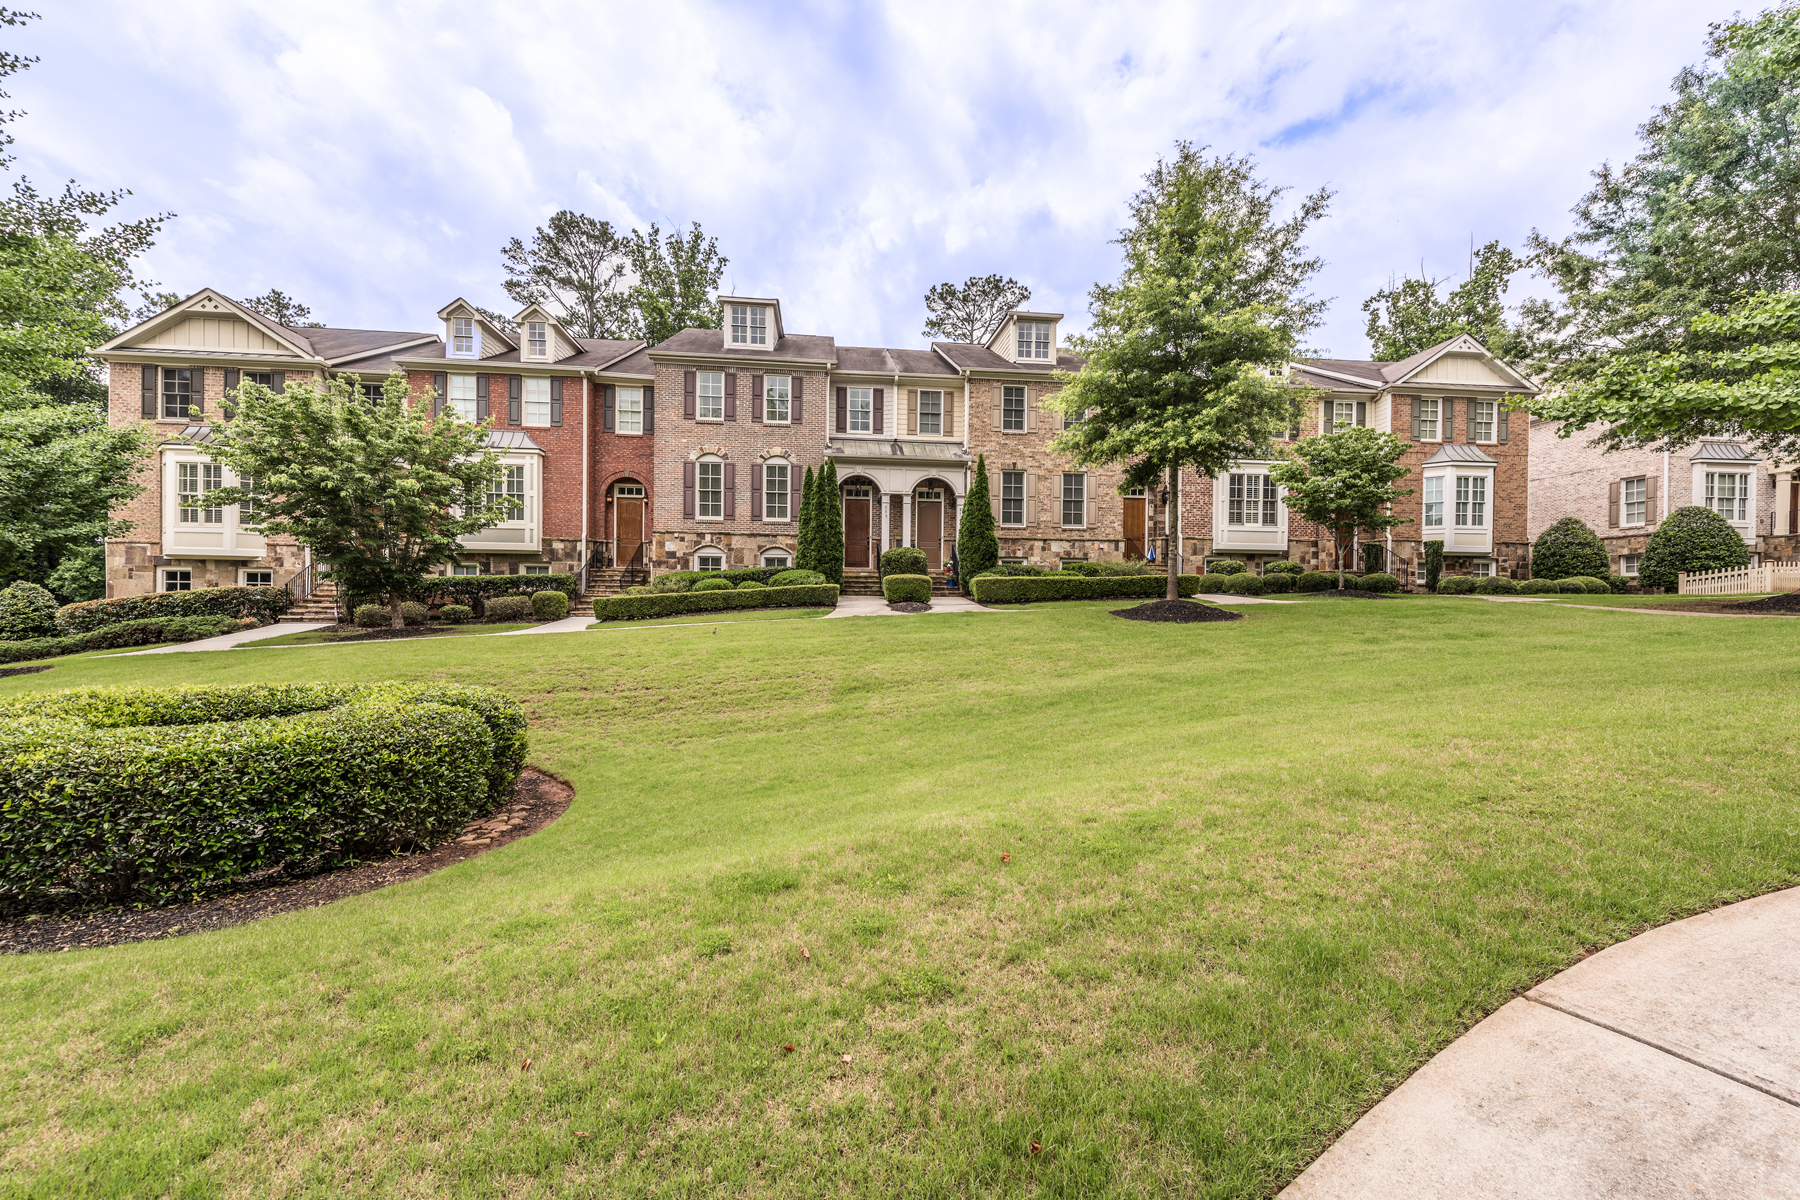 Single Family Home for Sale at Beautiful Townhome in Historic Marietta 875 Mountain View Terrace NW Marietta, Georgia 30064 United States